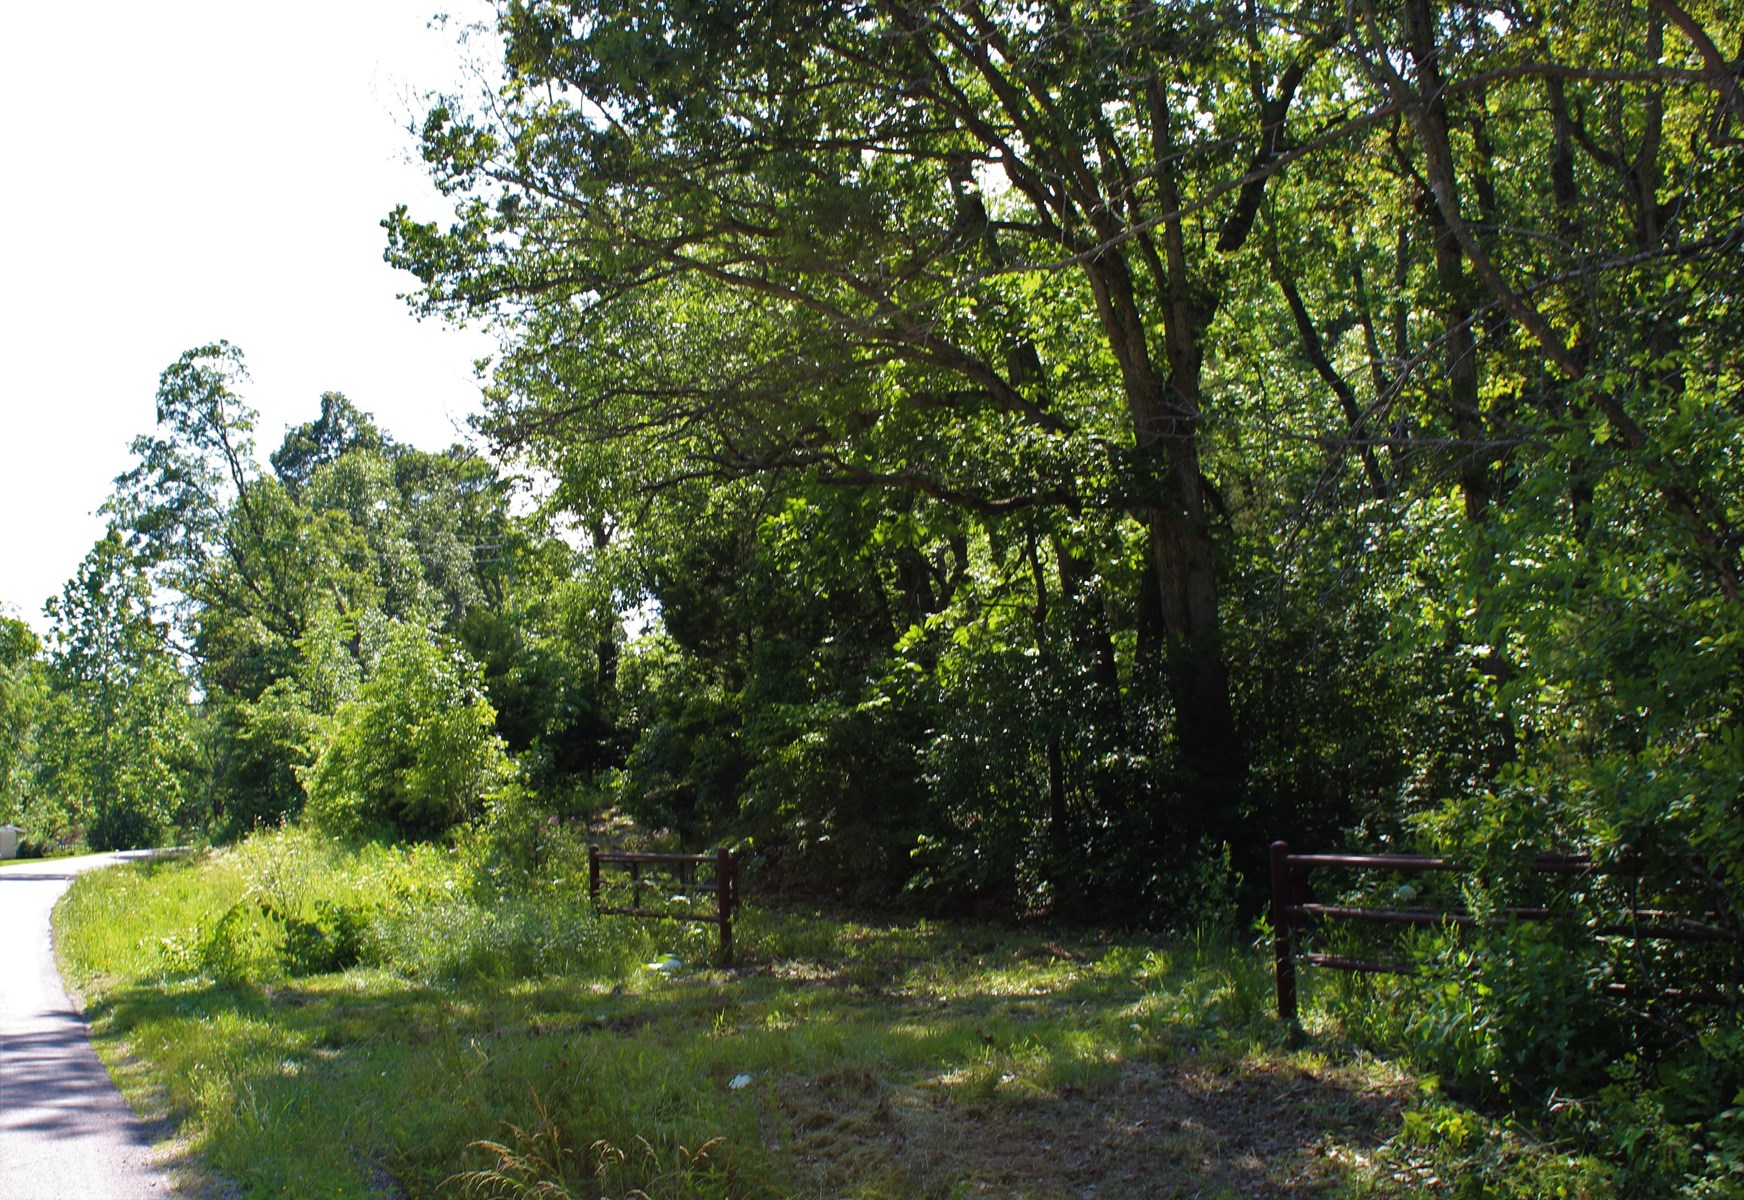 Timber, Recreation, & Hunting Land For Sale in Southern MO